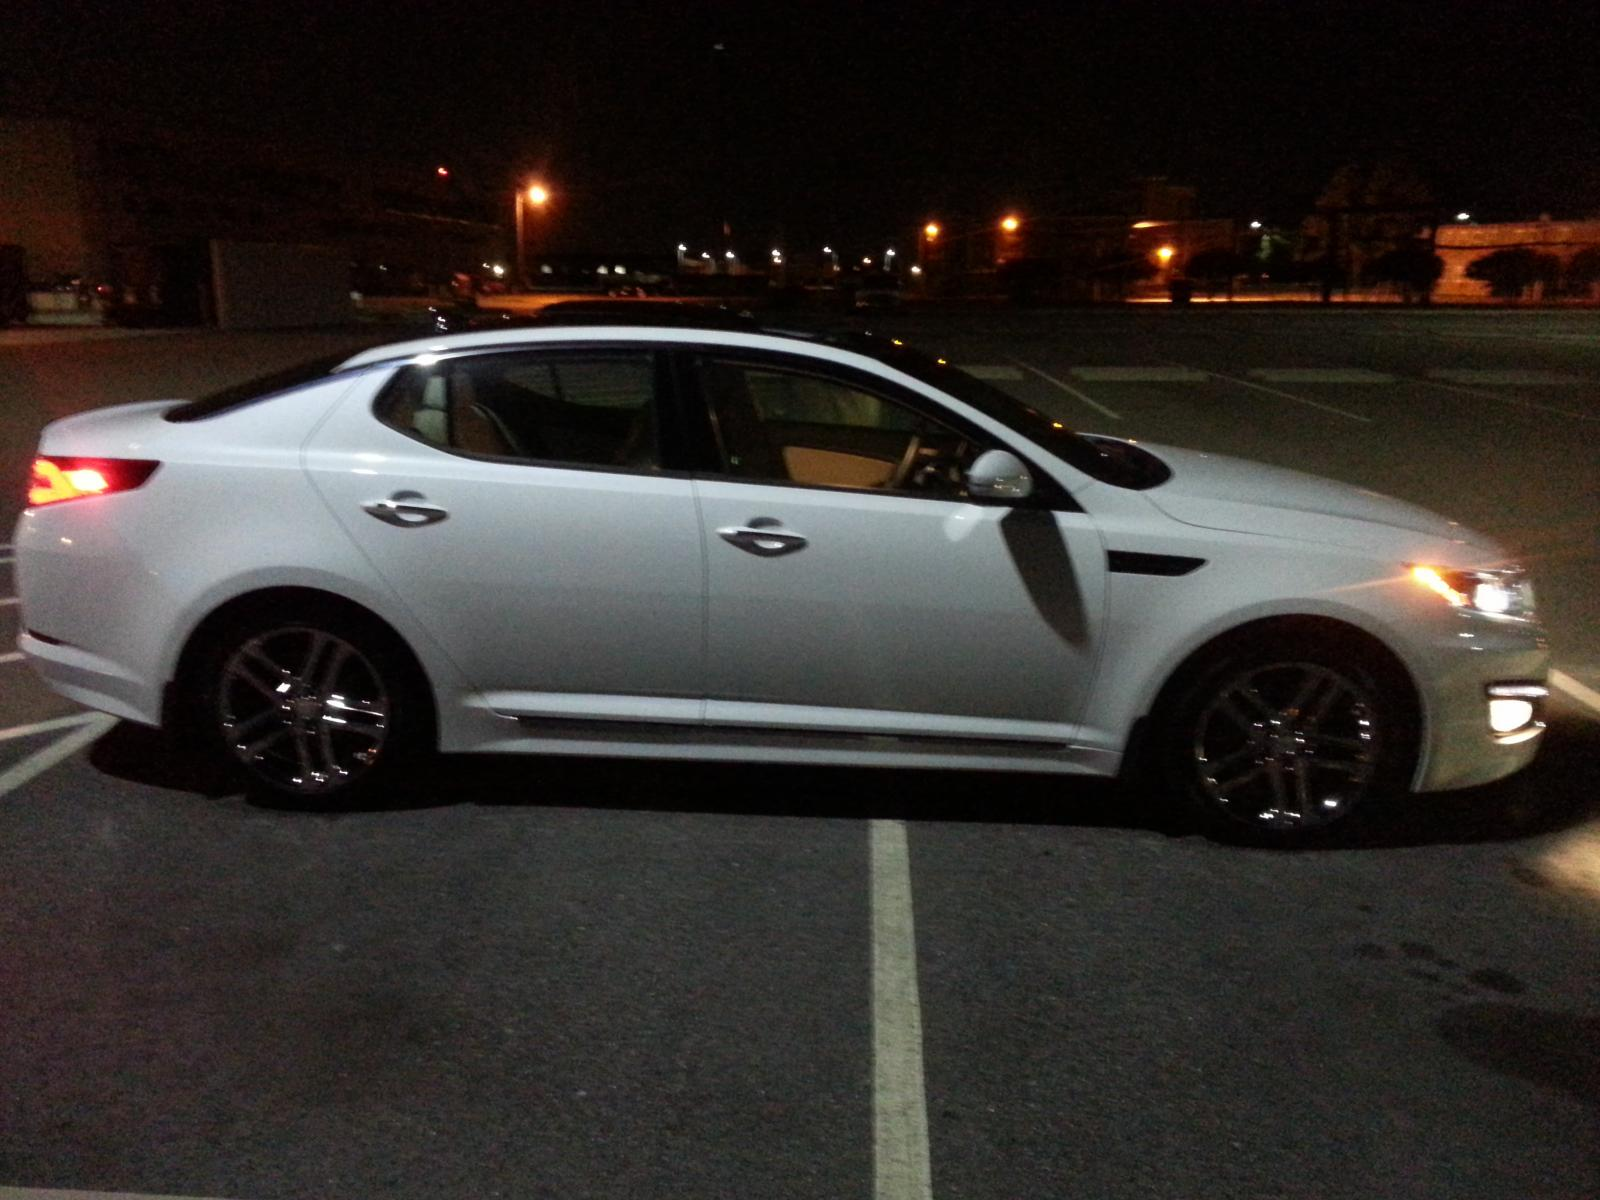 NEWEST MEMBER TO THE KIA FAMILY! 2013 KIA OPTIMA SXL!!!! SWEEEEET RIIIIDE.... lol-20130804_214731.jpg